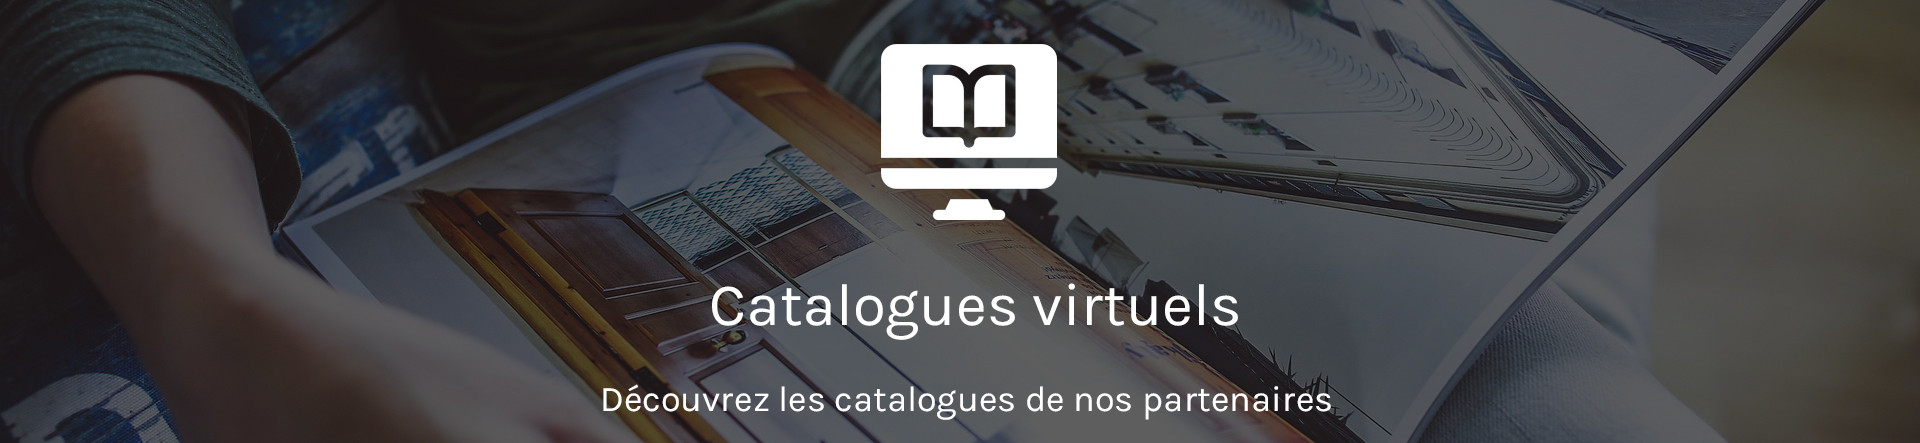 img-catalogues-accueil.jpg